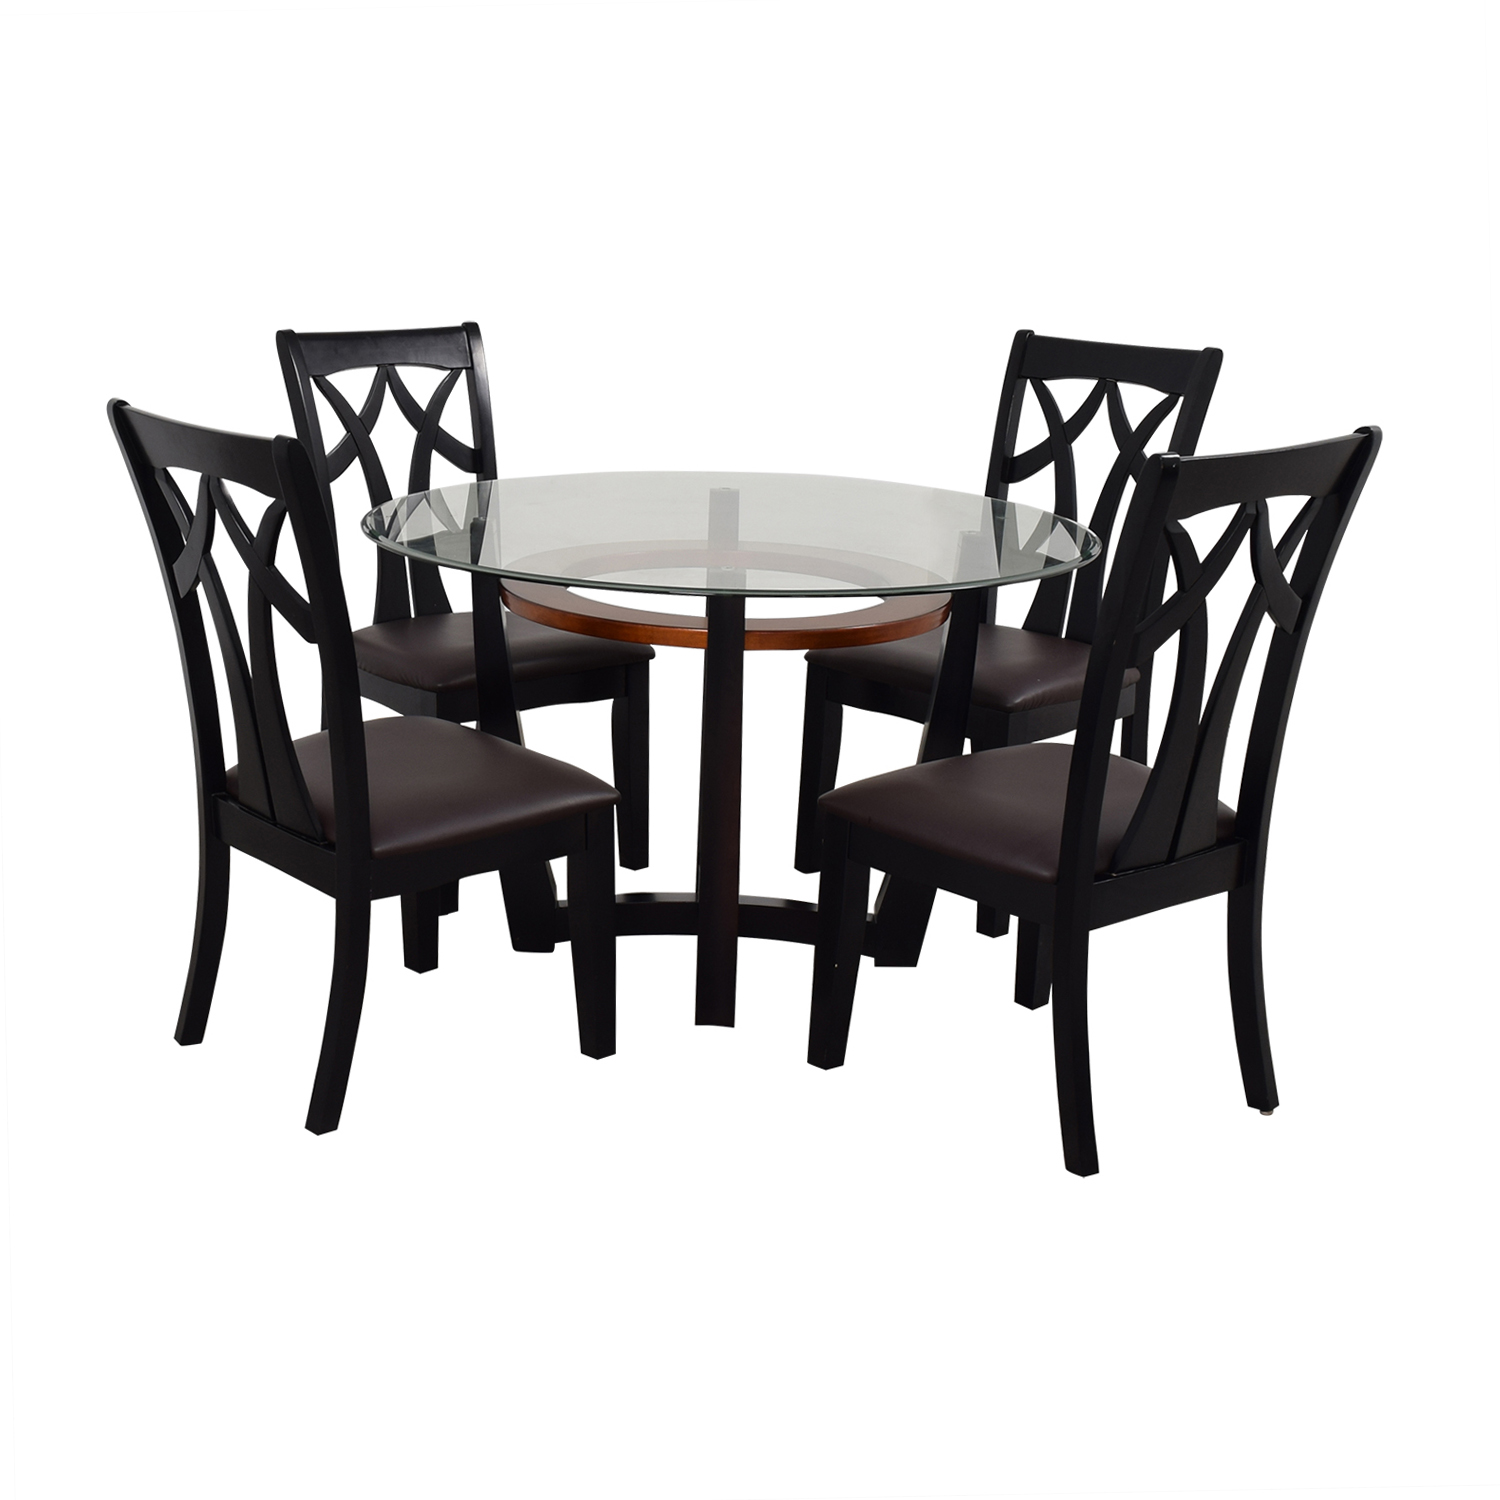 5% OFF - Raymour & Flanigan Raymour & Flanigan Wood and Glass Dining Set /  Tables